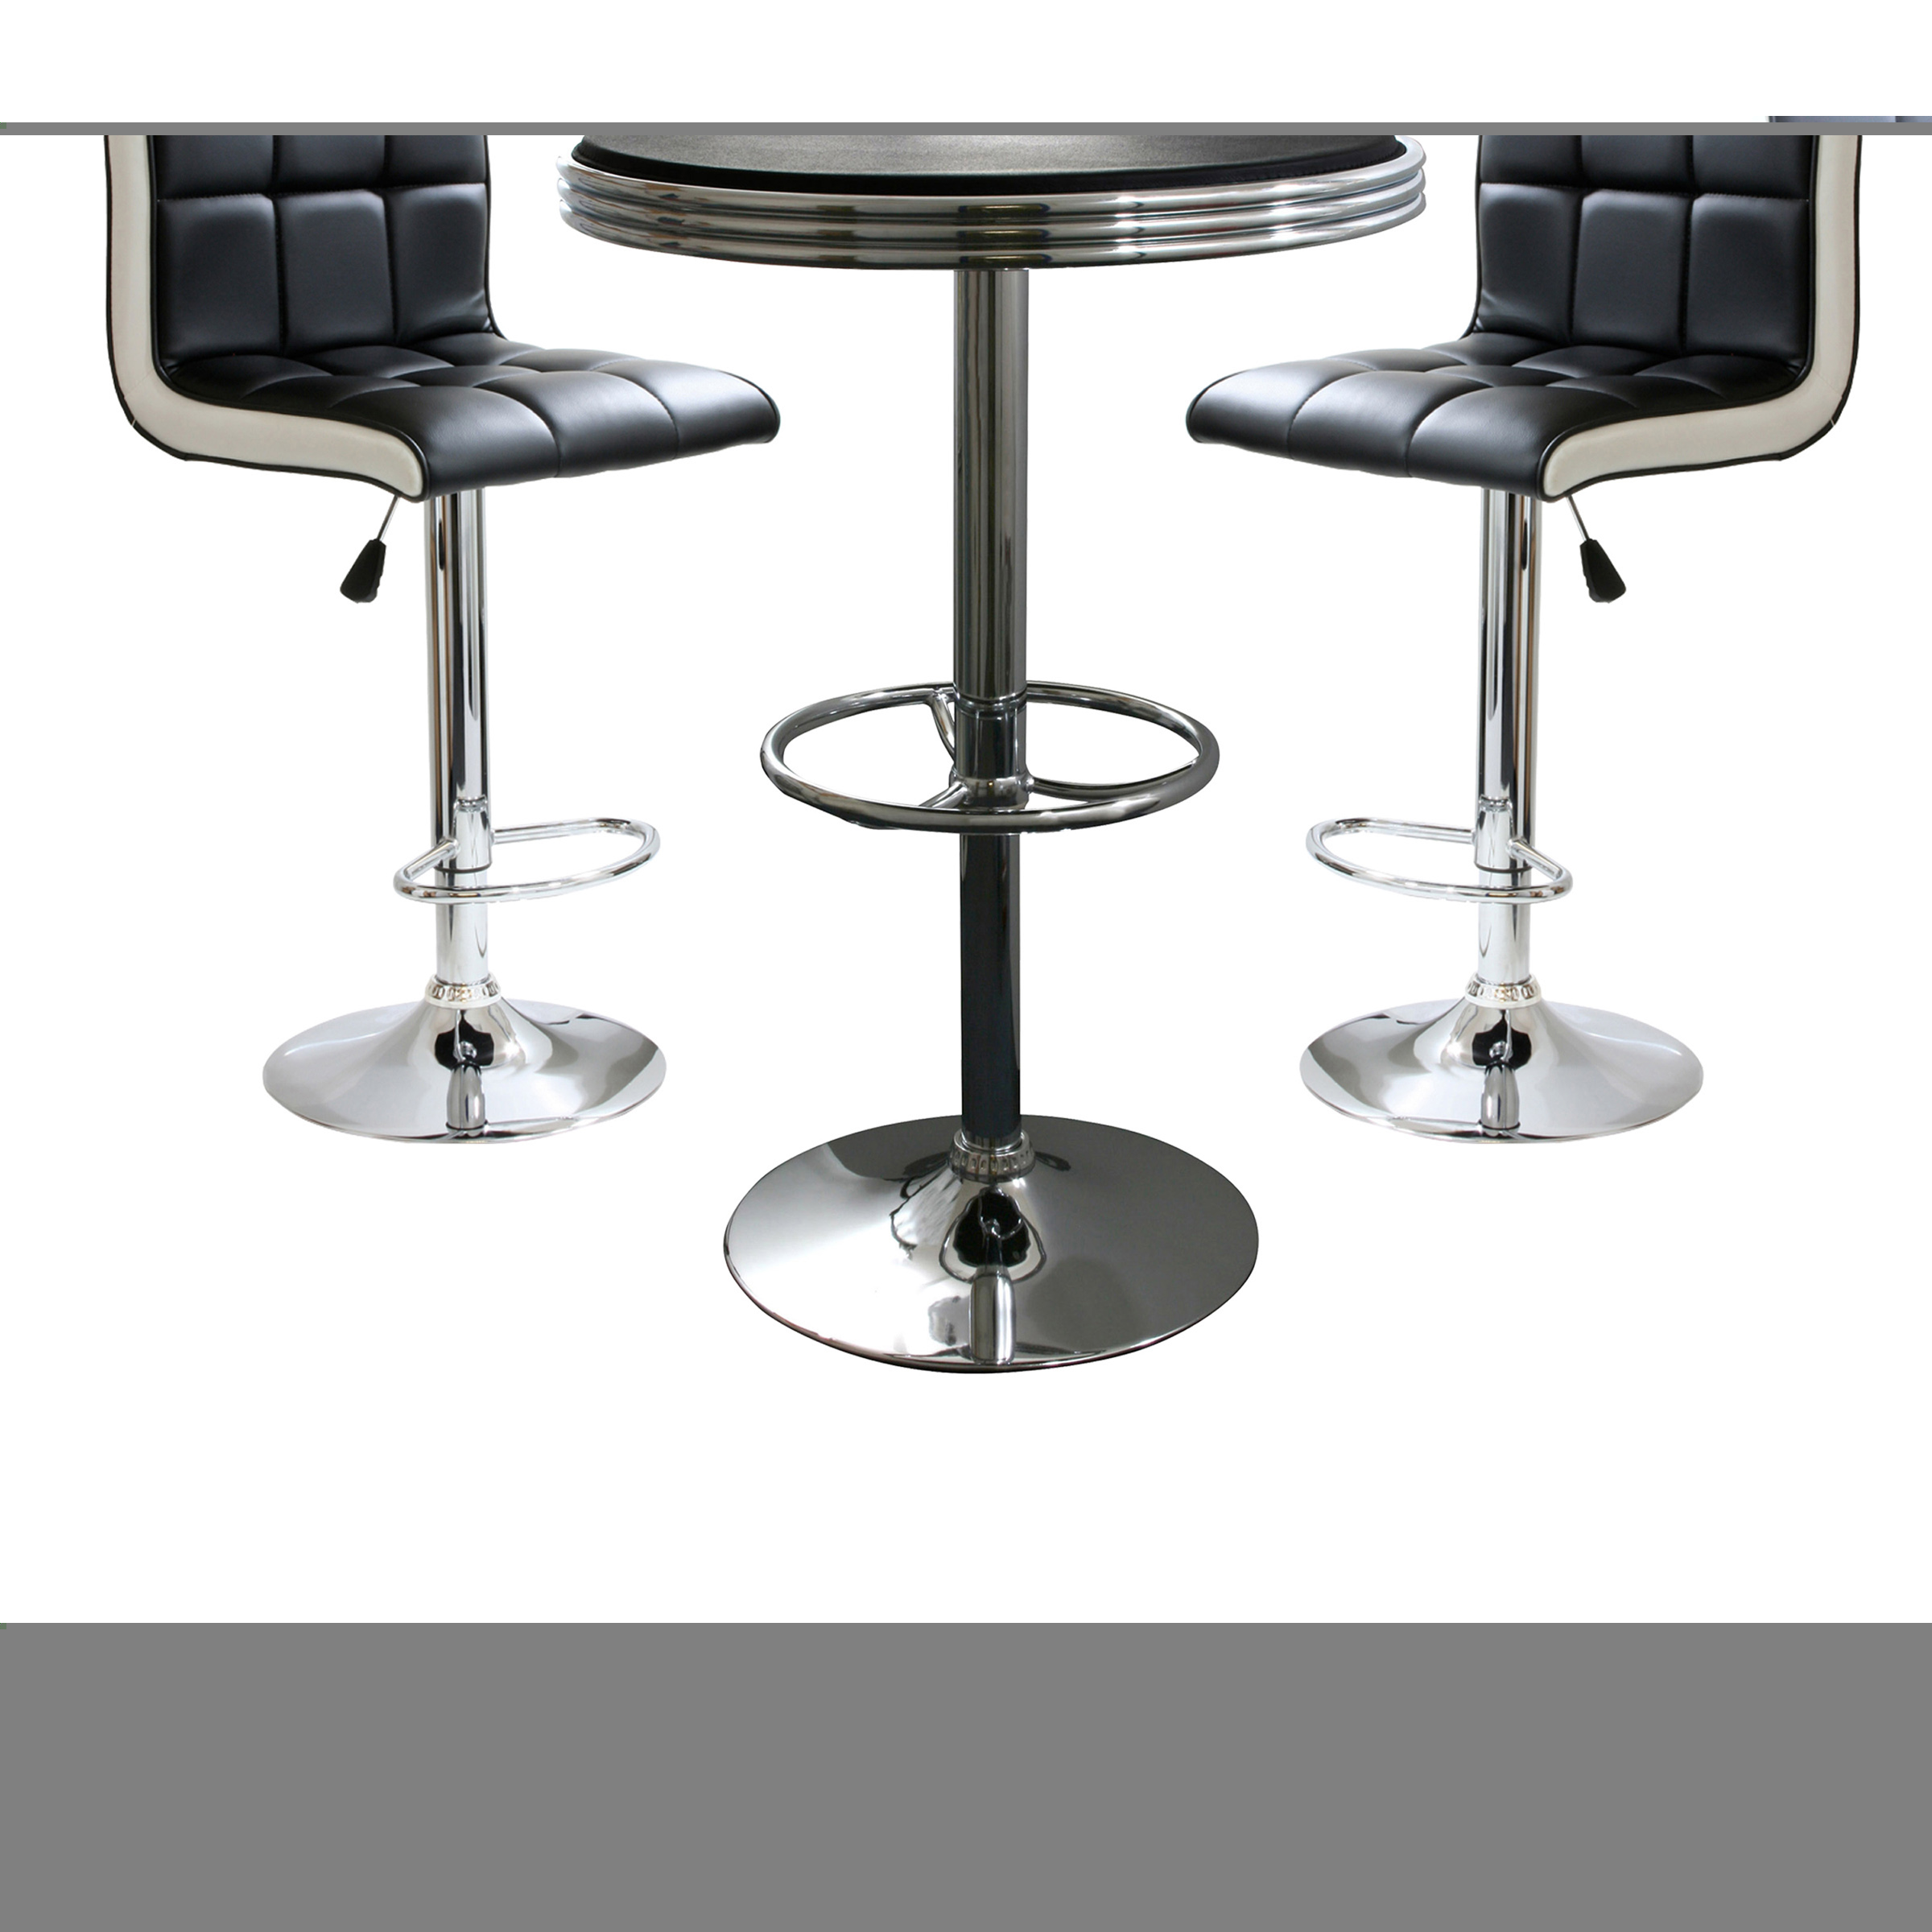 3 Piece Retro 2 Two Tone Adjustable Height Bistro Set Pub Diner Furniture